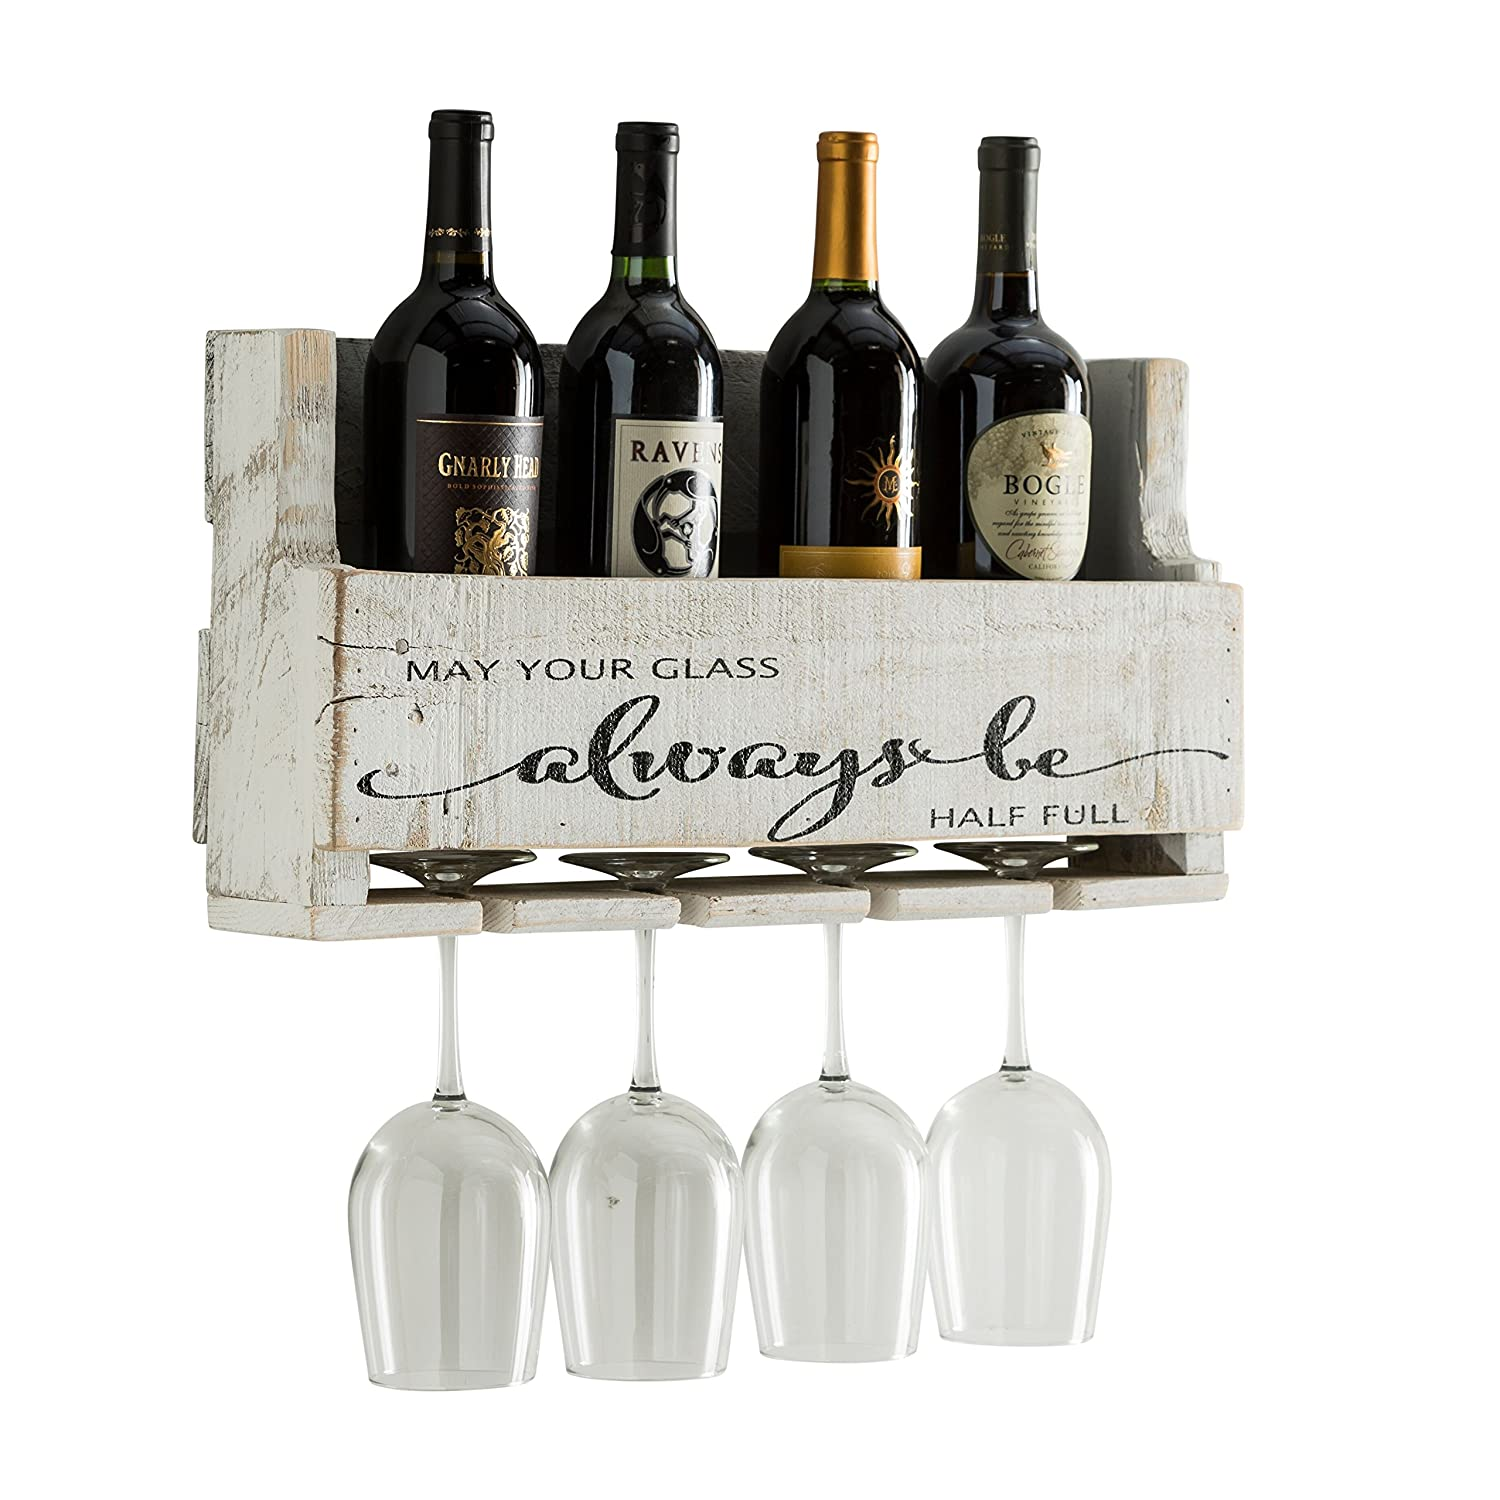 del Hutson Designs The Little Elm Wine Rack w/Quote 'May Your Glass Alway Be Half Full, USA Handmade Reclaimed Wood, Wall Mounted, 4 Bottle 4 Long Stem Glass Holder (Walnut)